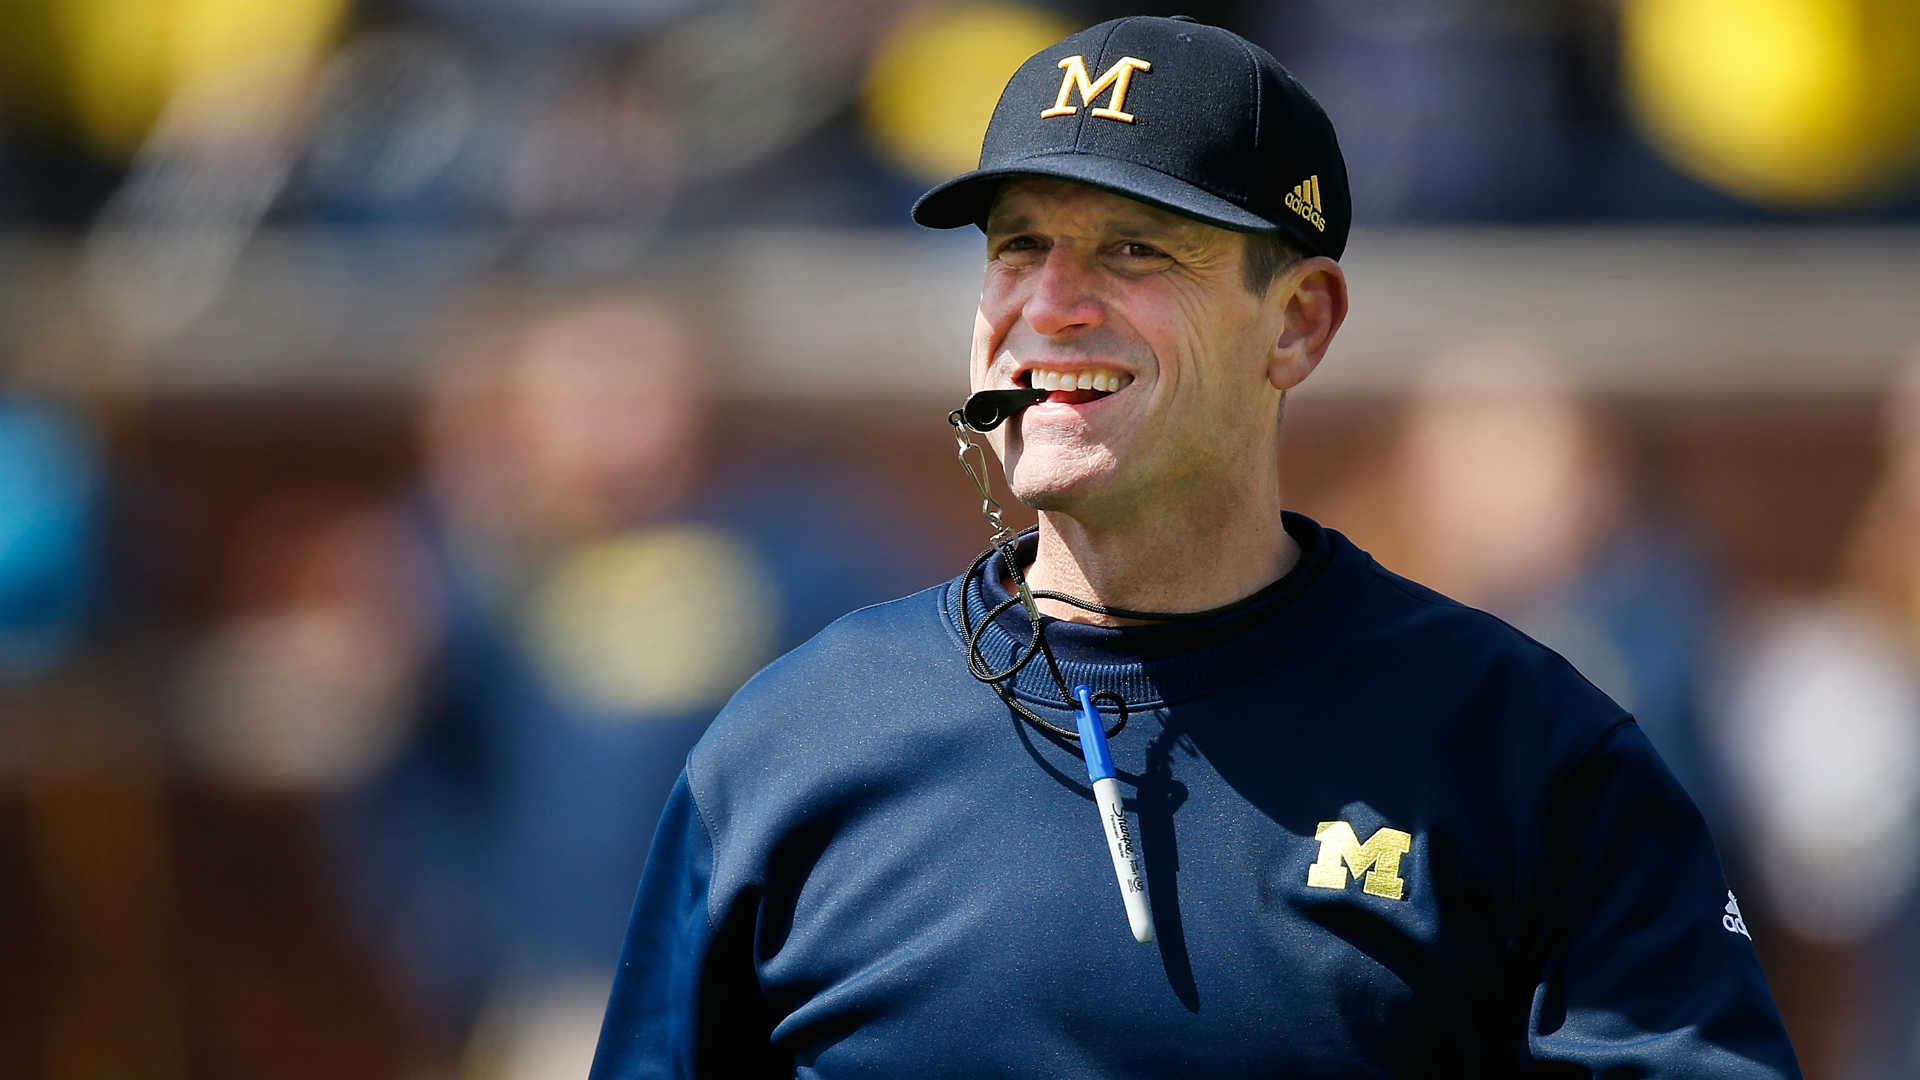 Jim Harbaugh gives Nicki Minaj a shoutout on Twitter